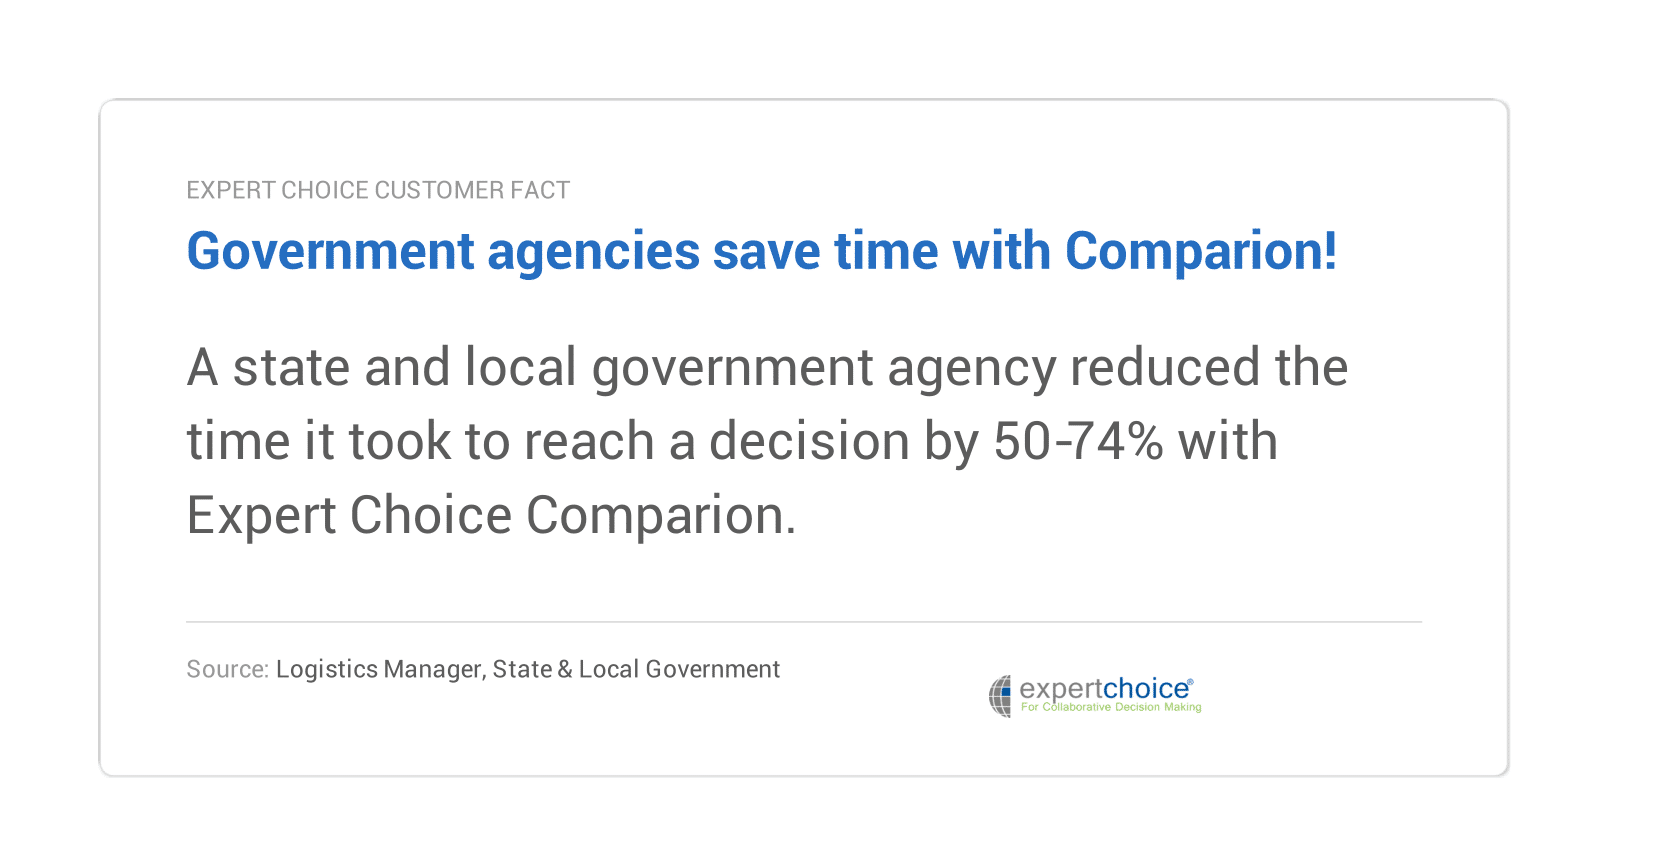 govt agencies save time